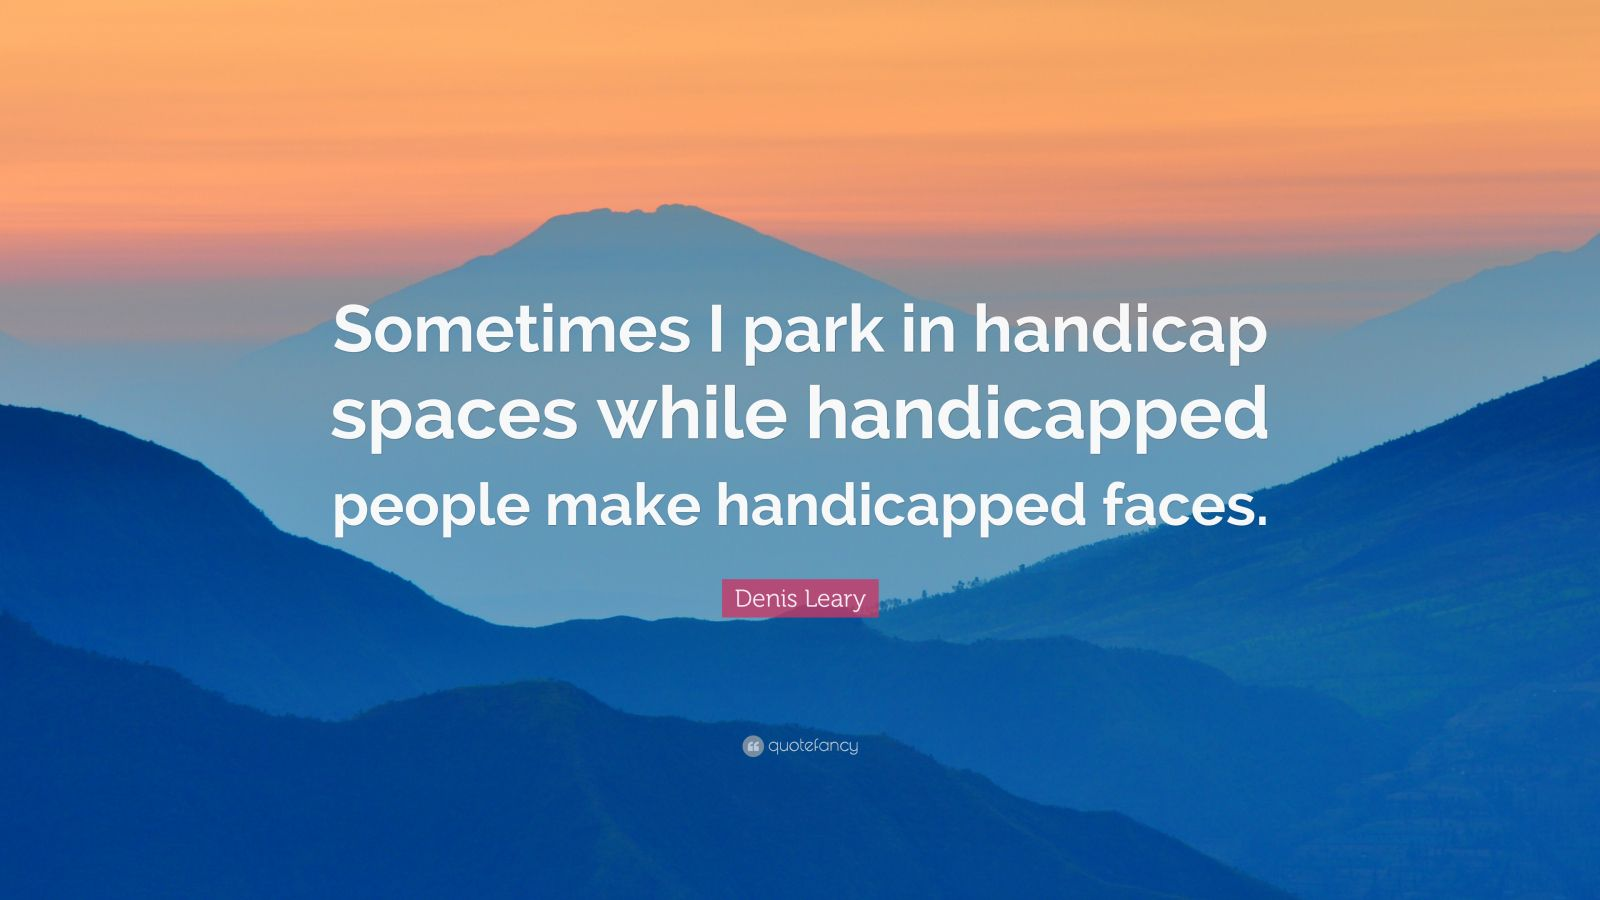 essay about handicapped people Research paper on discrimination against disabled people discrimination against disabled people research papers look at the issues still facing the disabled population with employment, access to buildings, and etc.